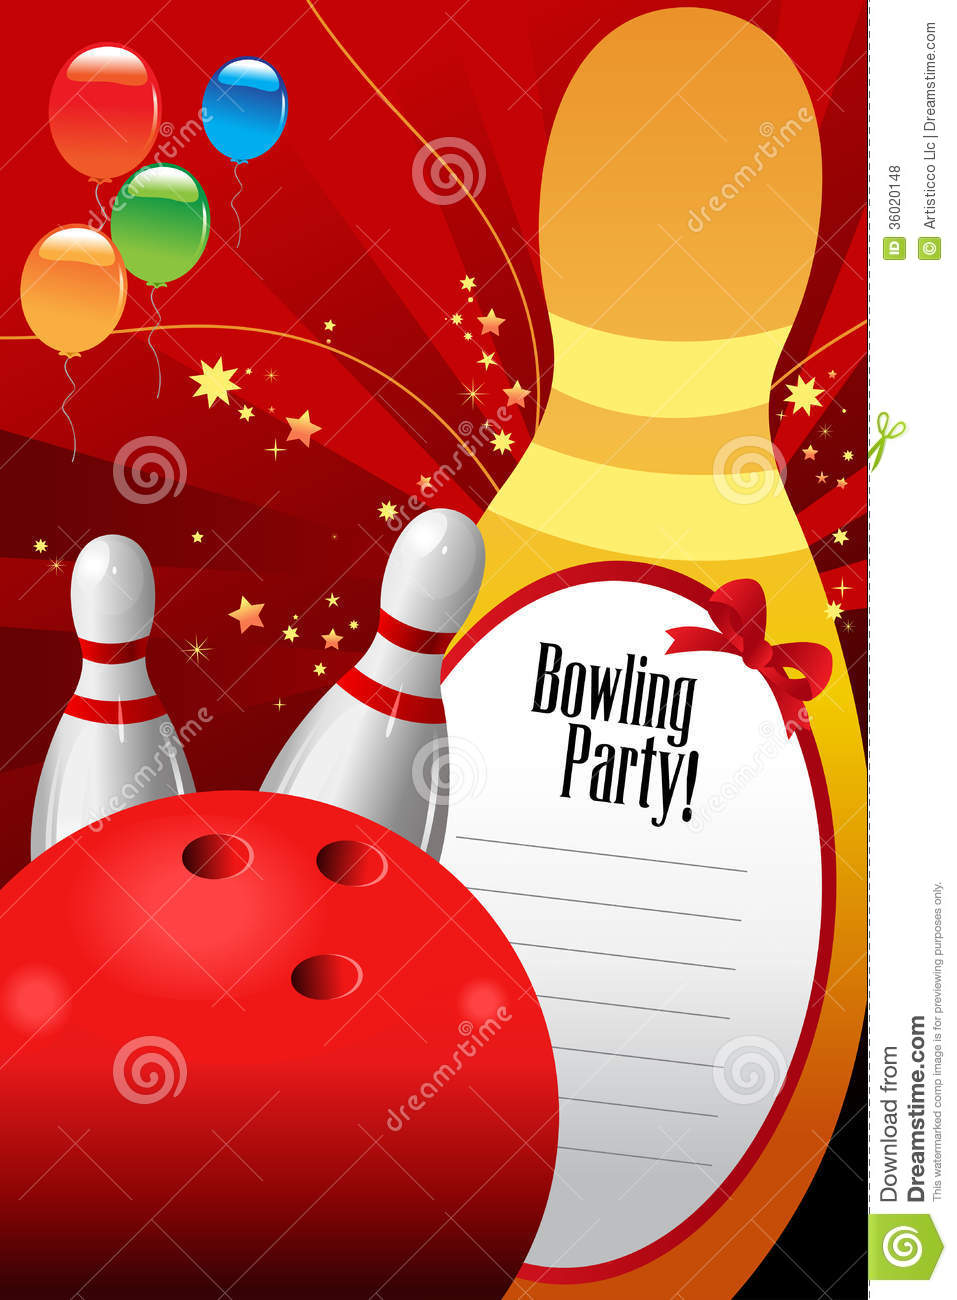 Bowling Party Invitation Template Stock Vector.